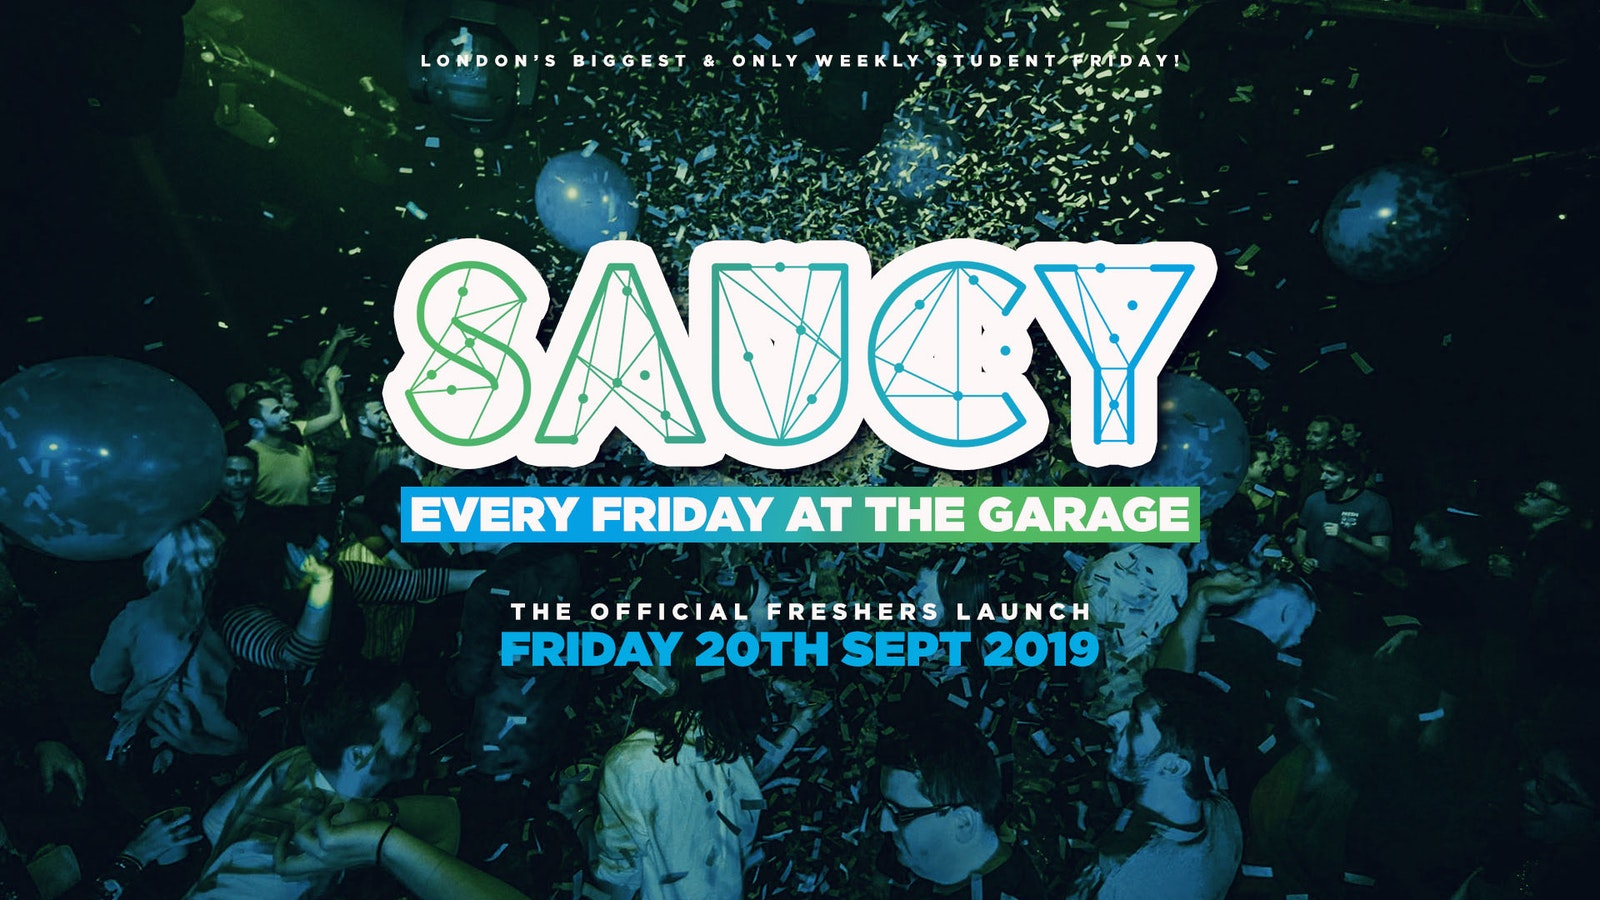 SAUCY LONDON – FRESHERS LAUNCH // London's Biggest Weekly Student Friday!